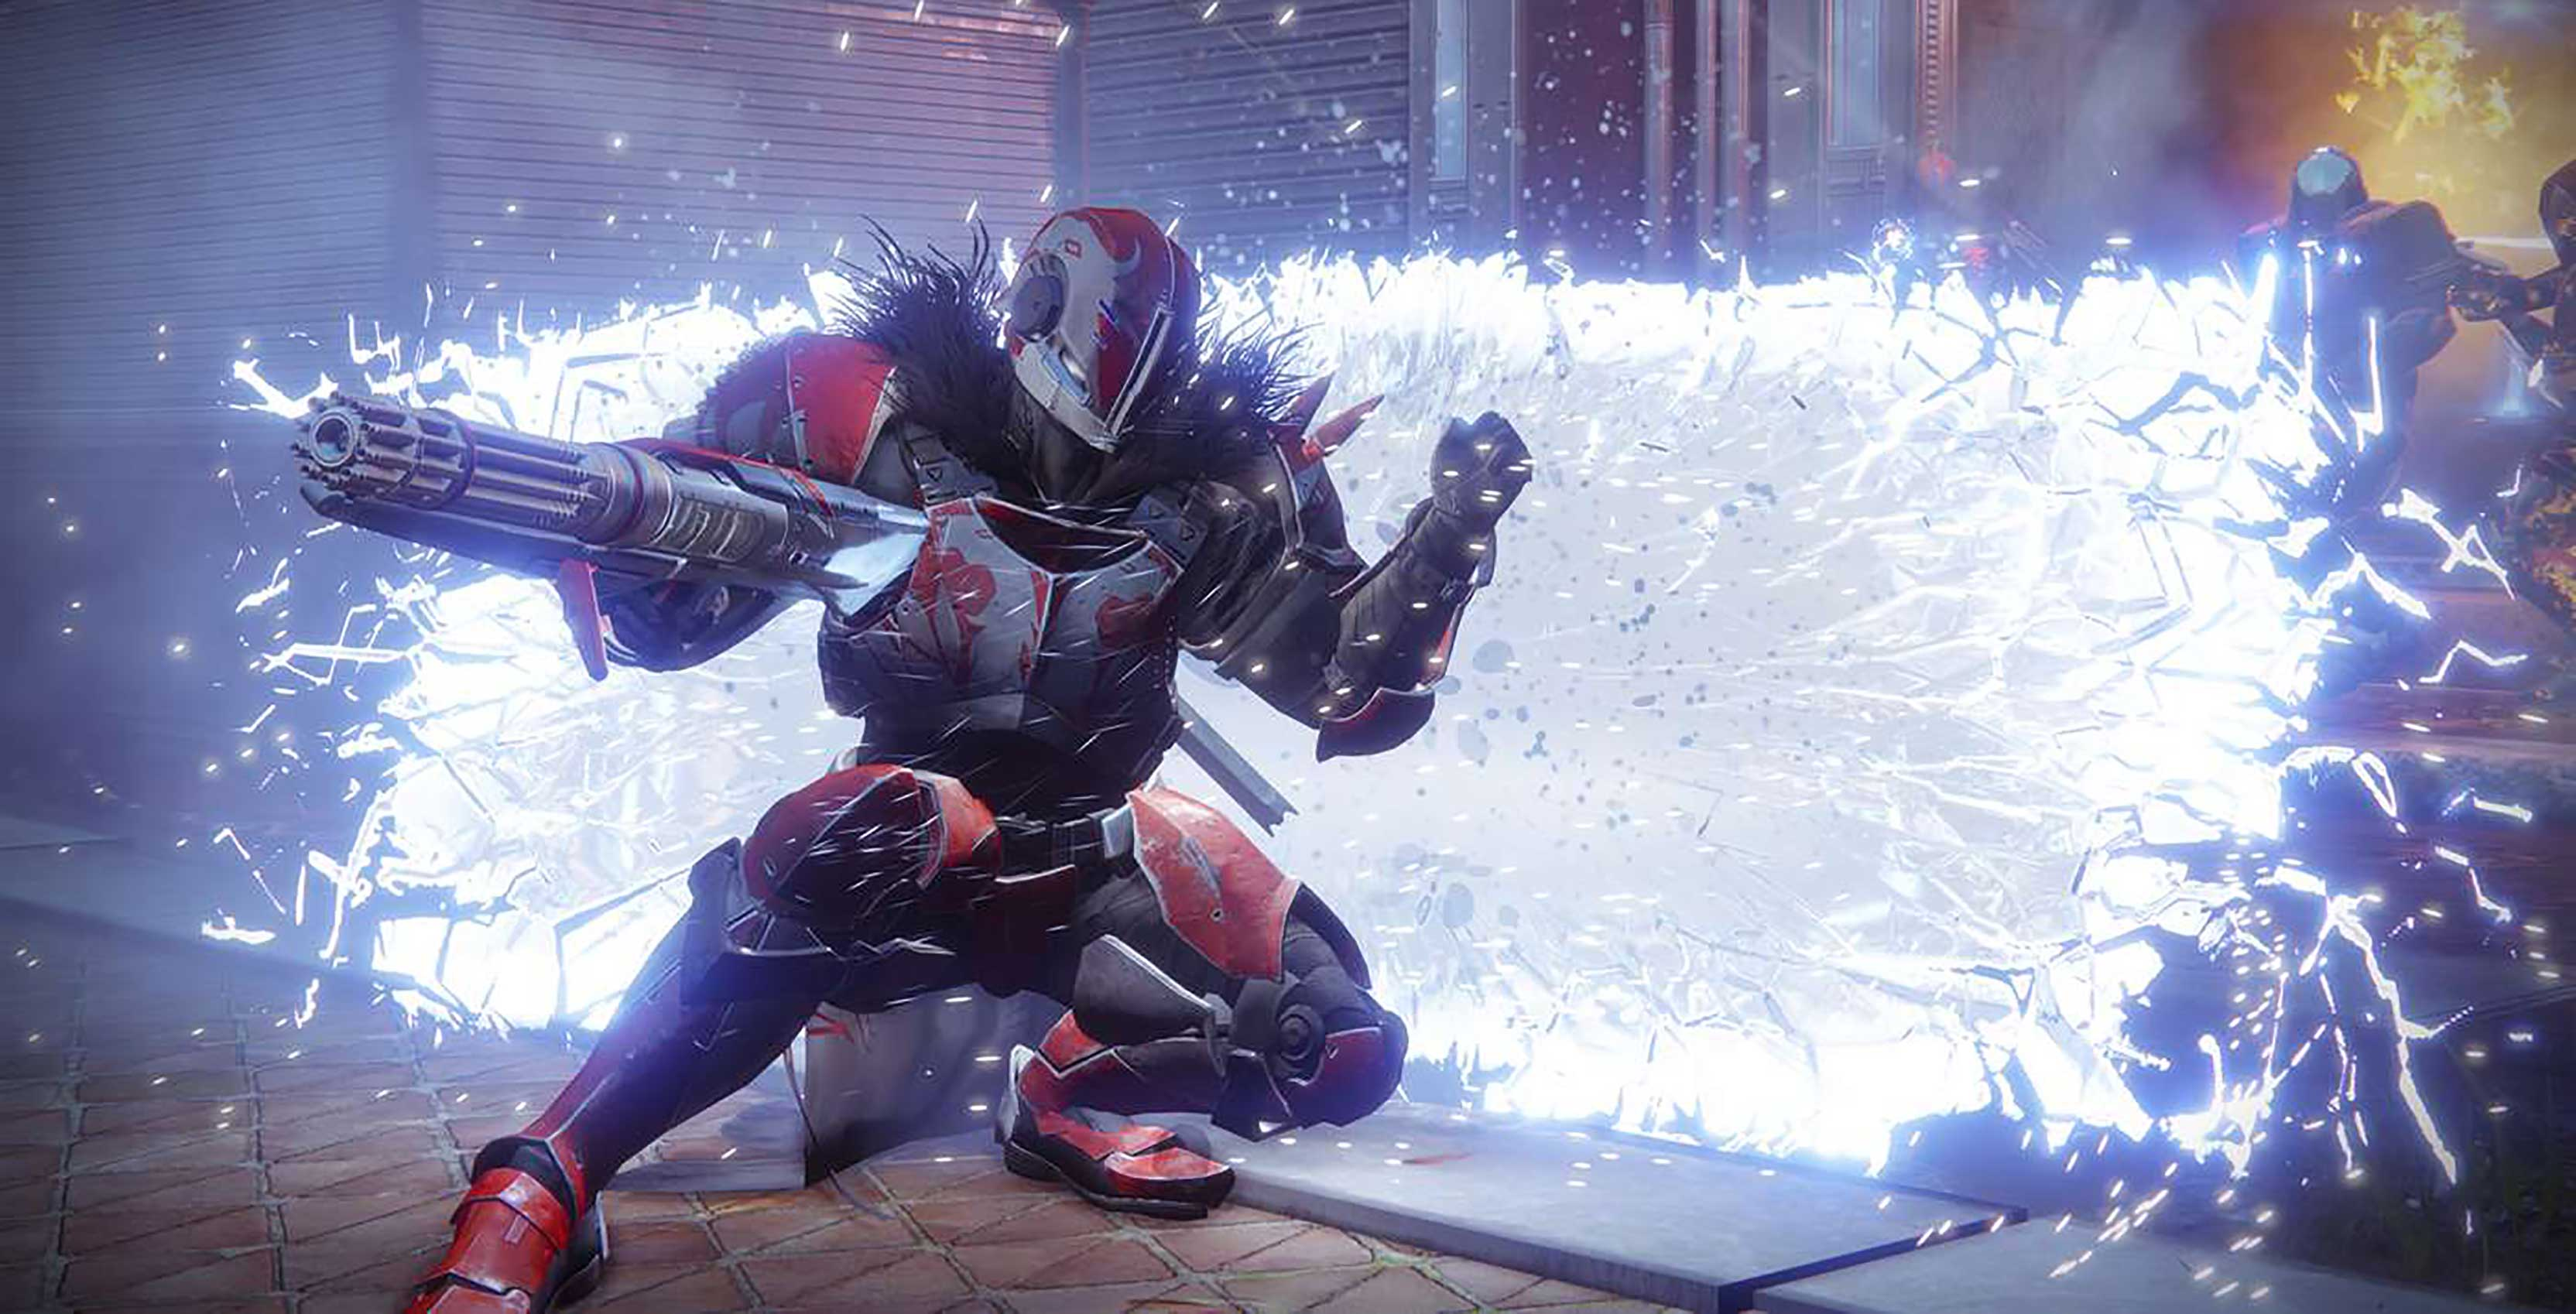 Bungie opens up even more about the future of Destiny 2